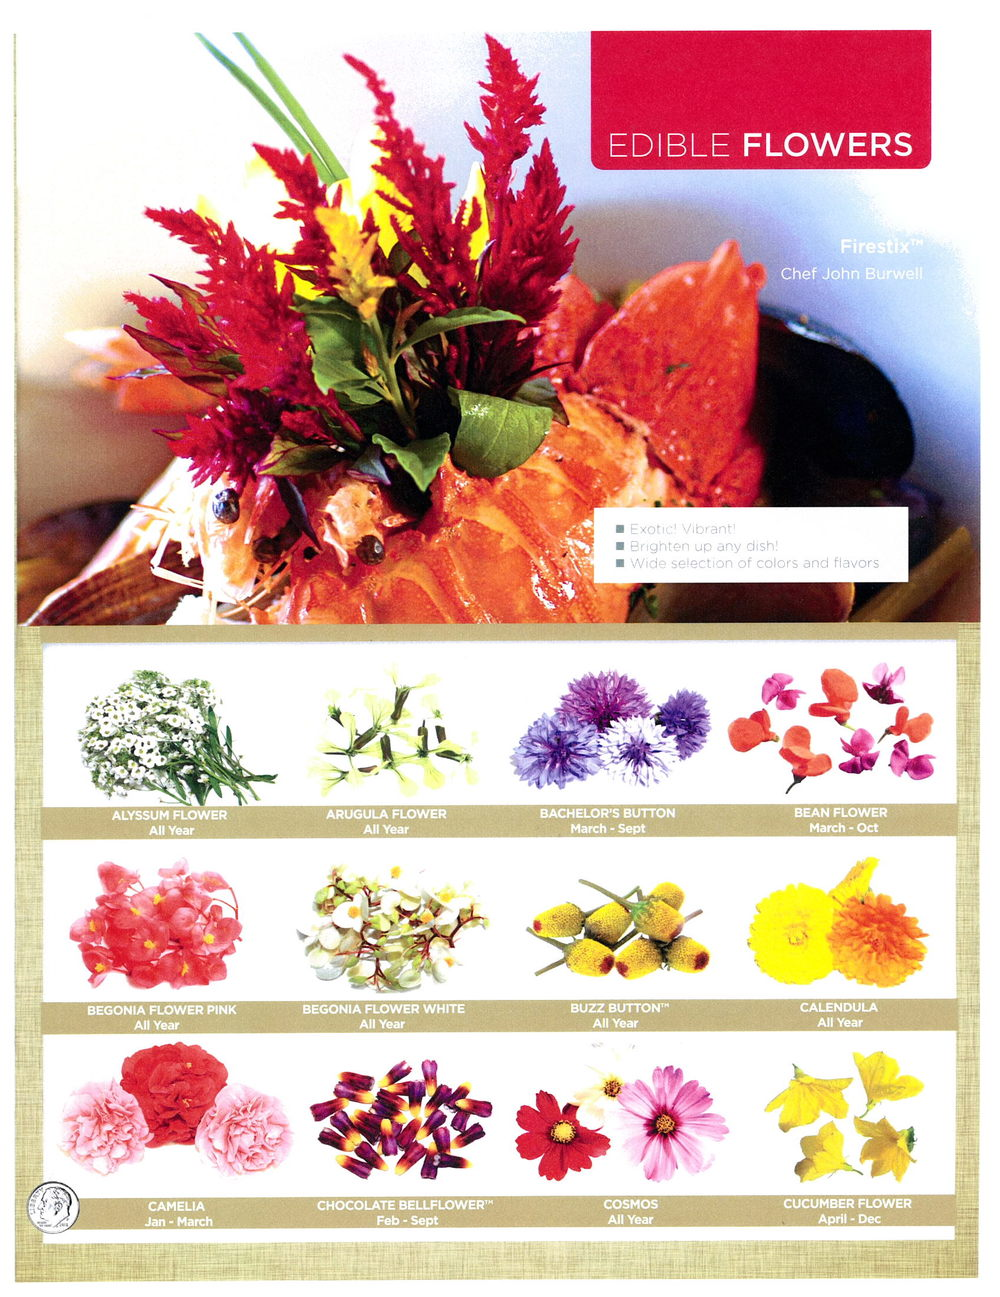 edible flowers page 1